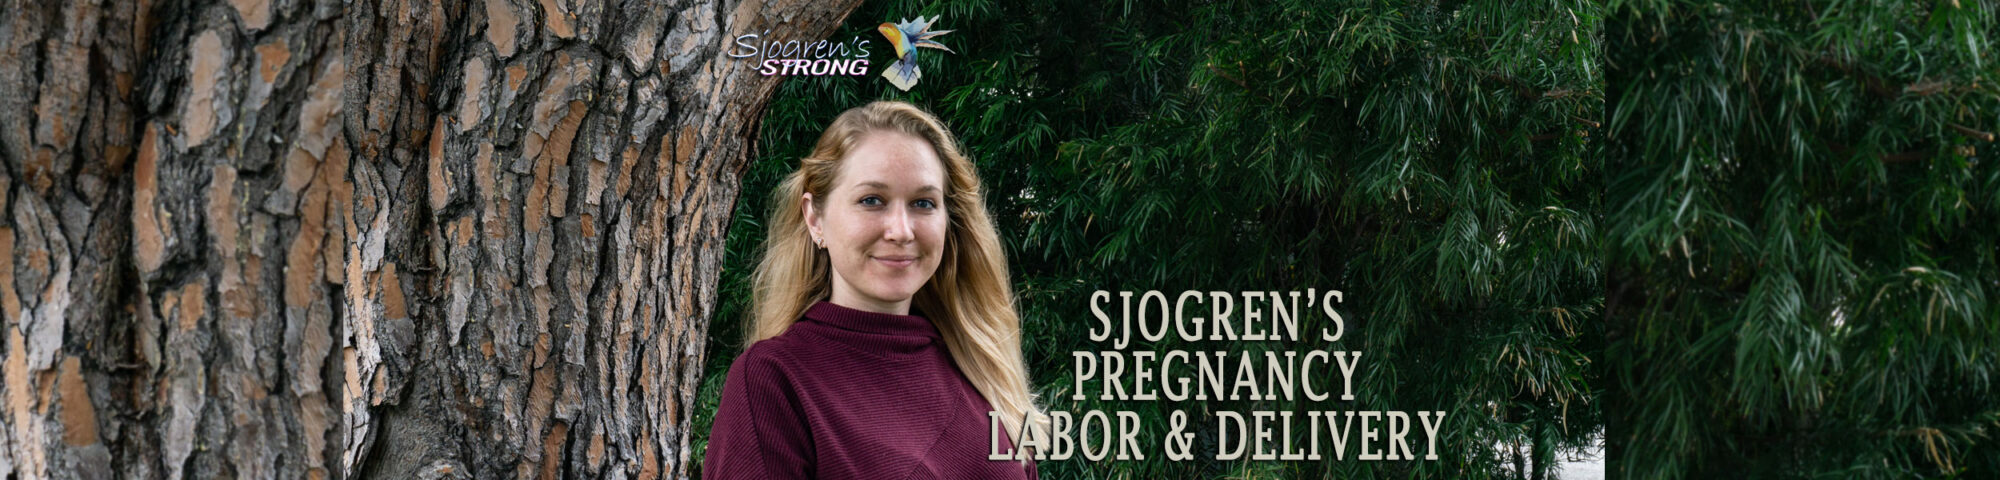 Sjogren's: Pregnancy - Labor & Delivery